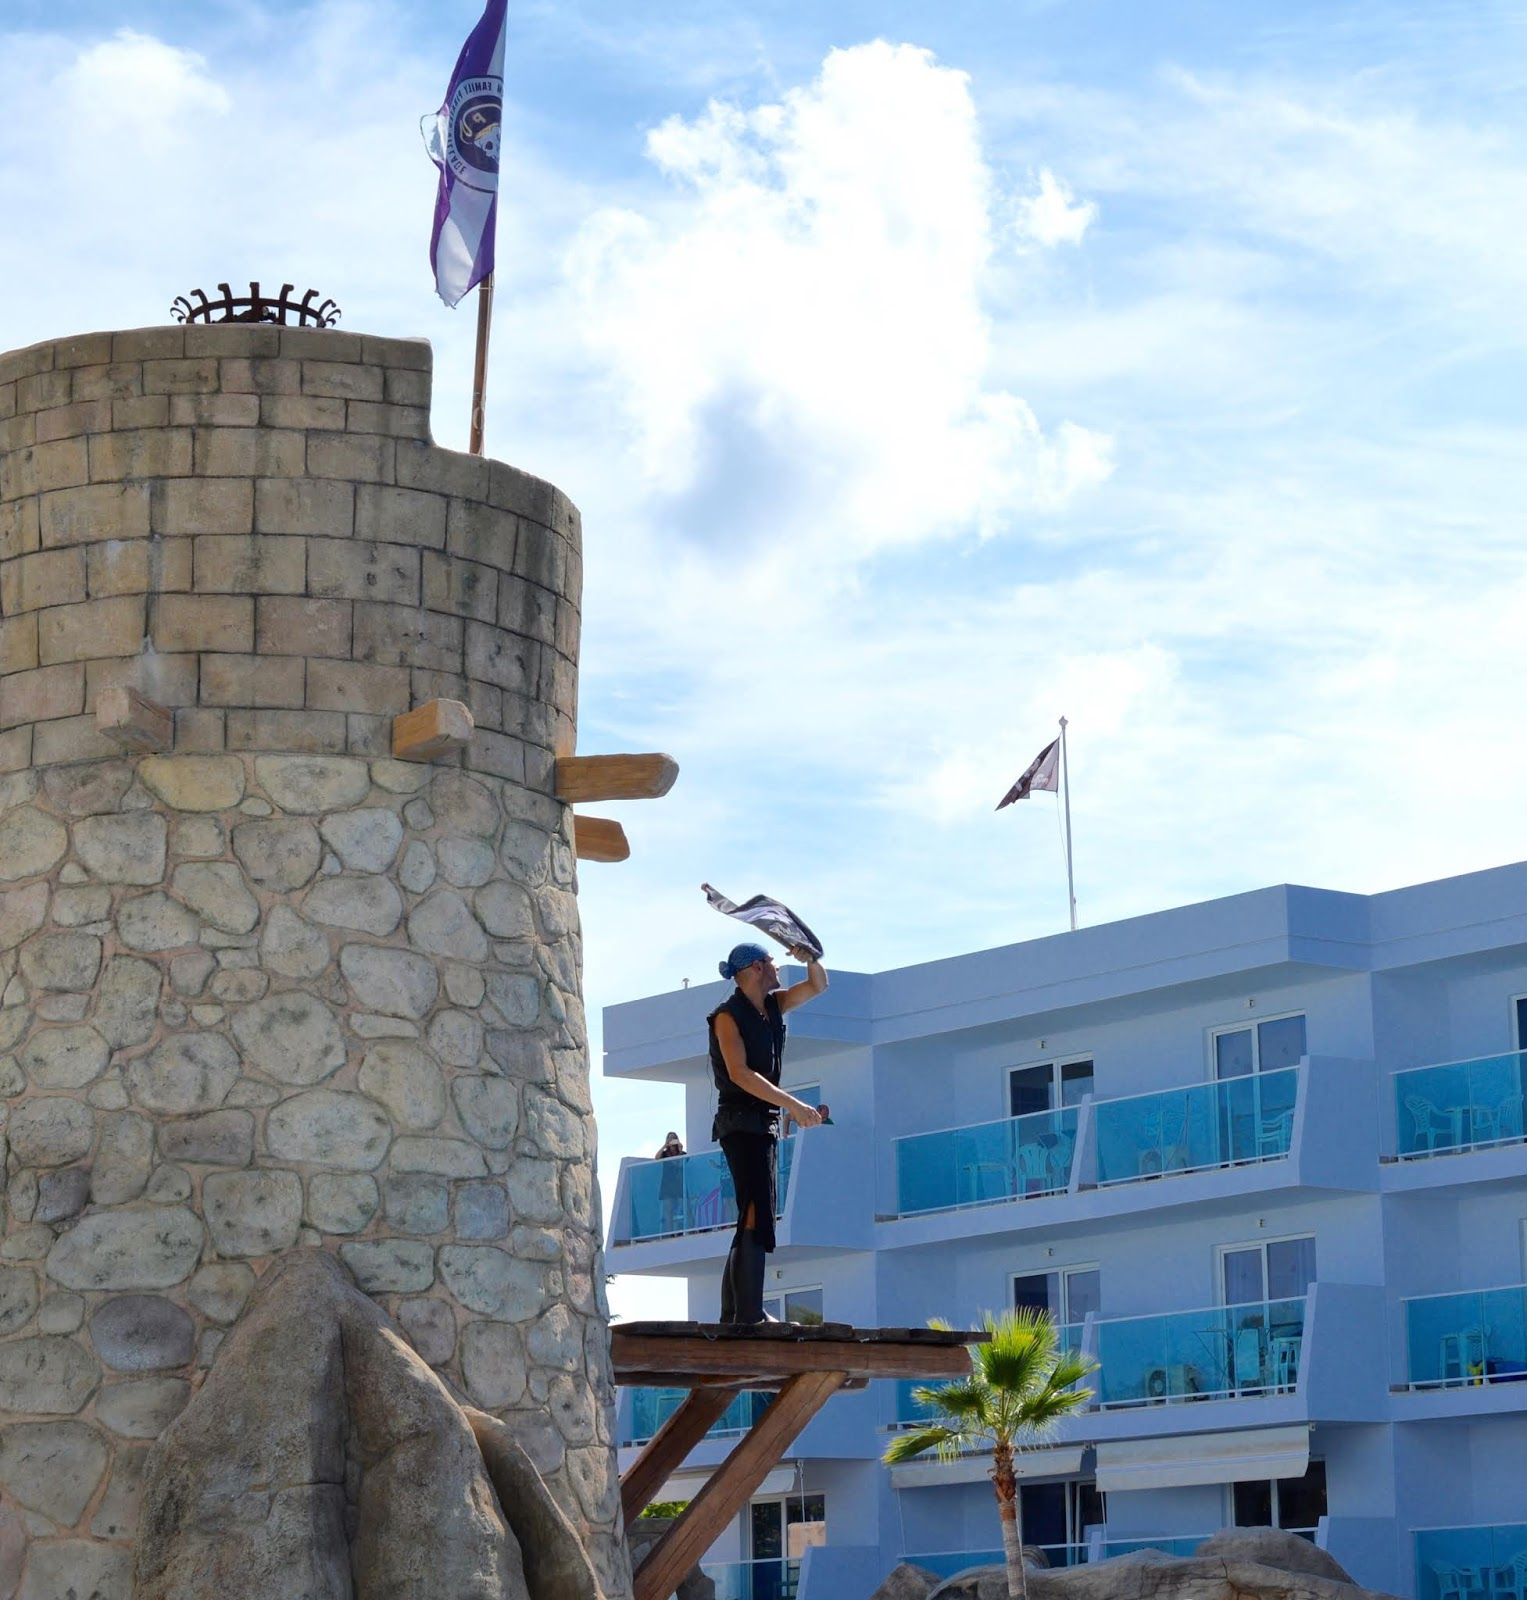 Pirate Swimming Pools and Mermaid Lessons at Pirates Village, Majorca - walking the plank